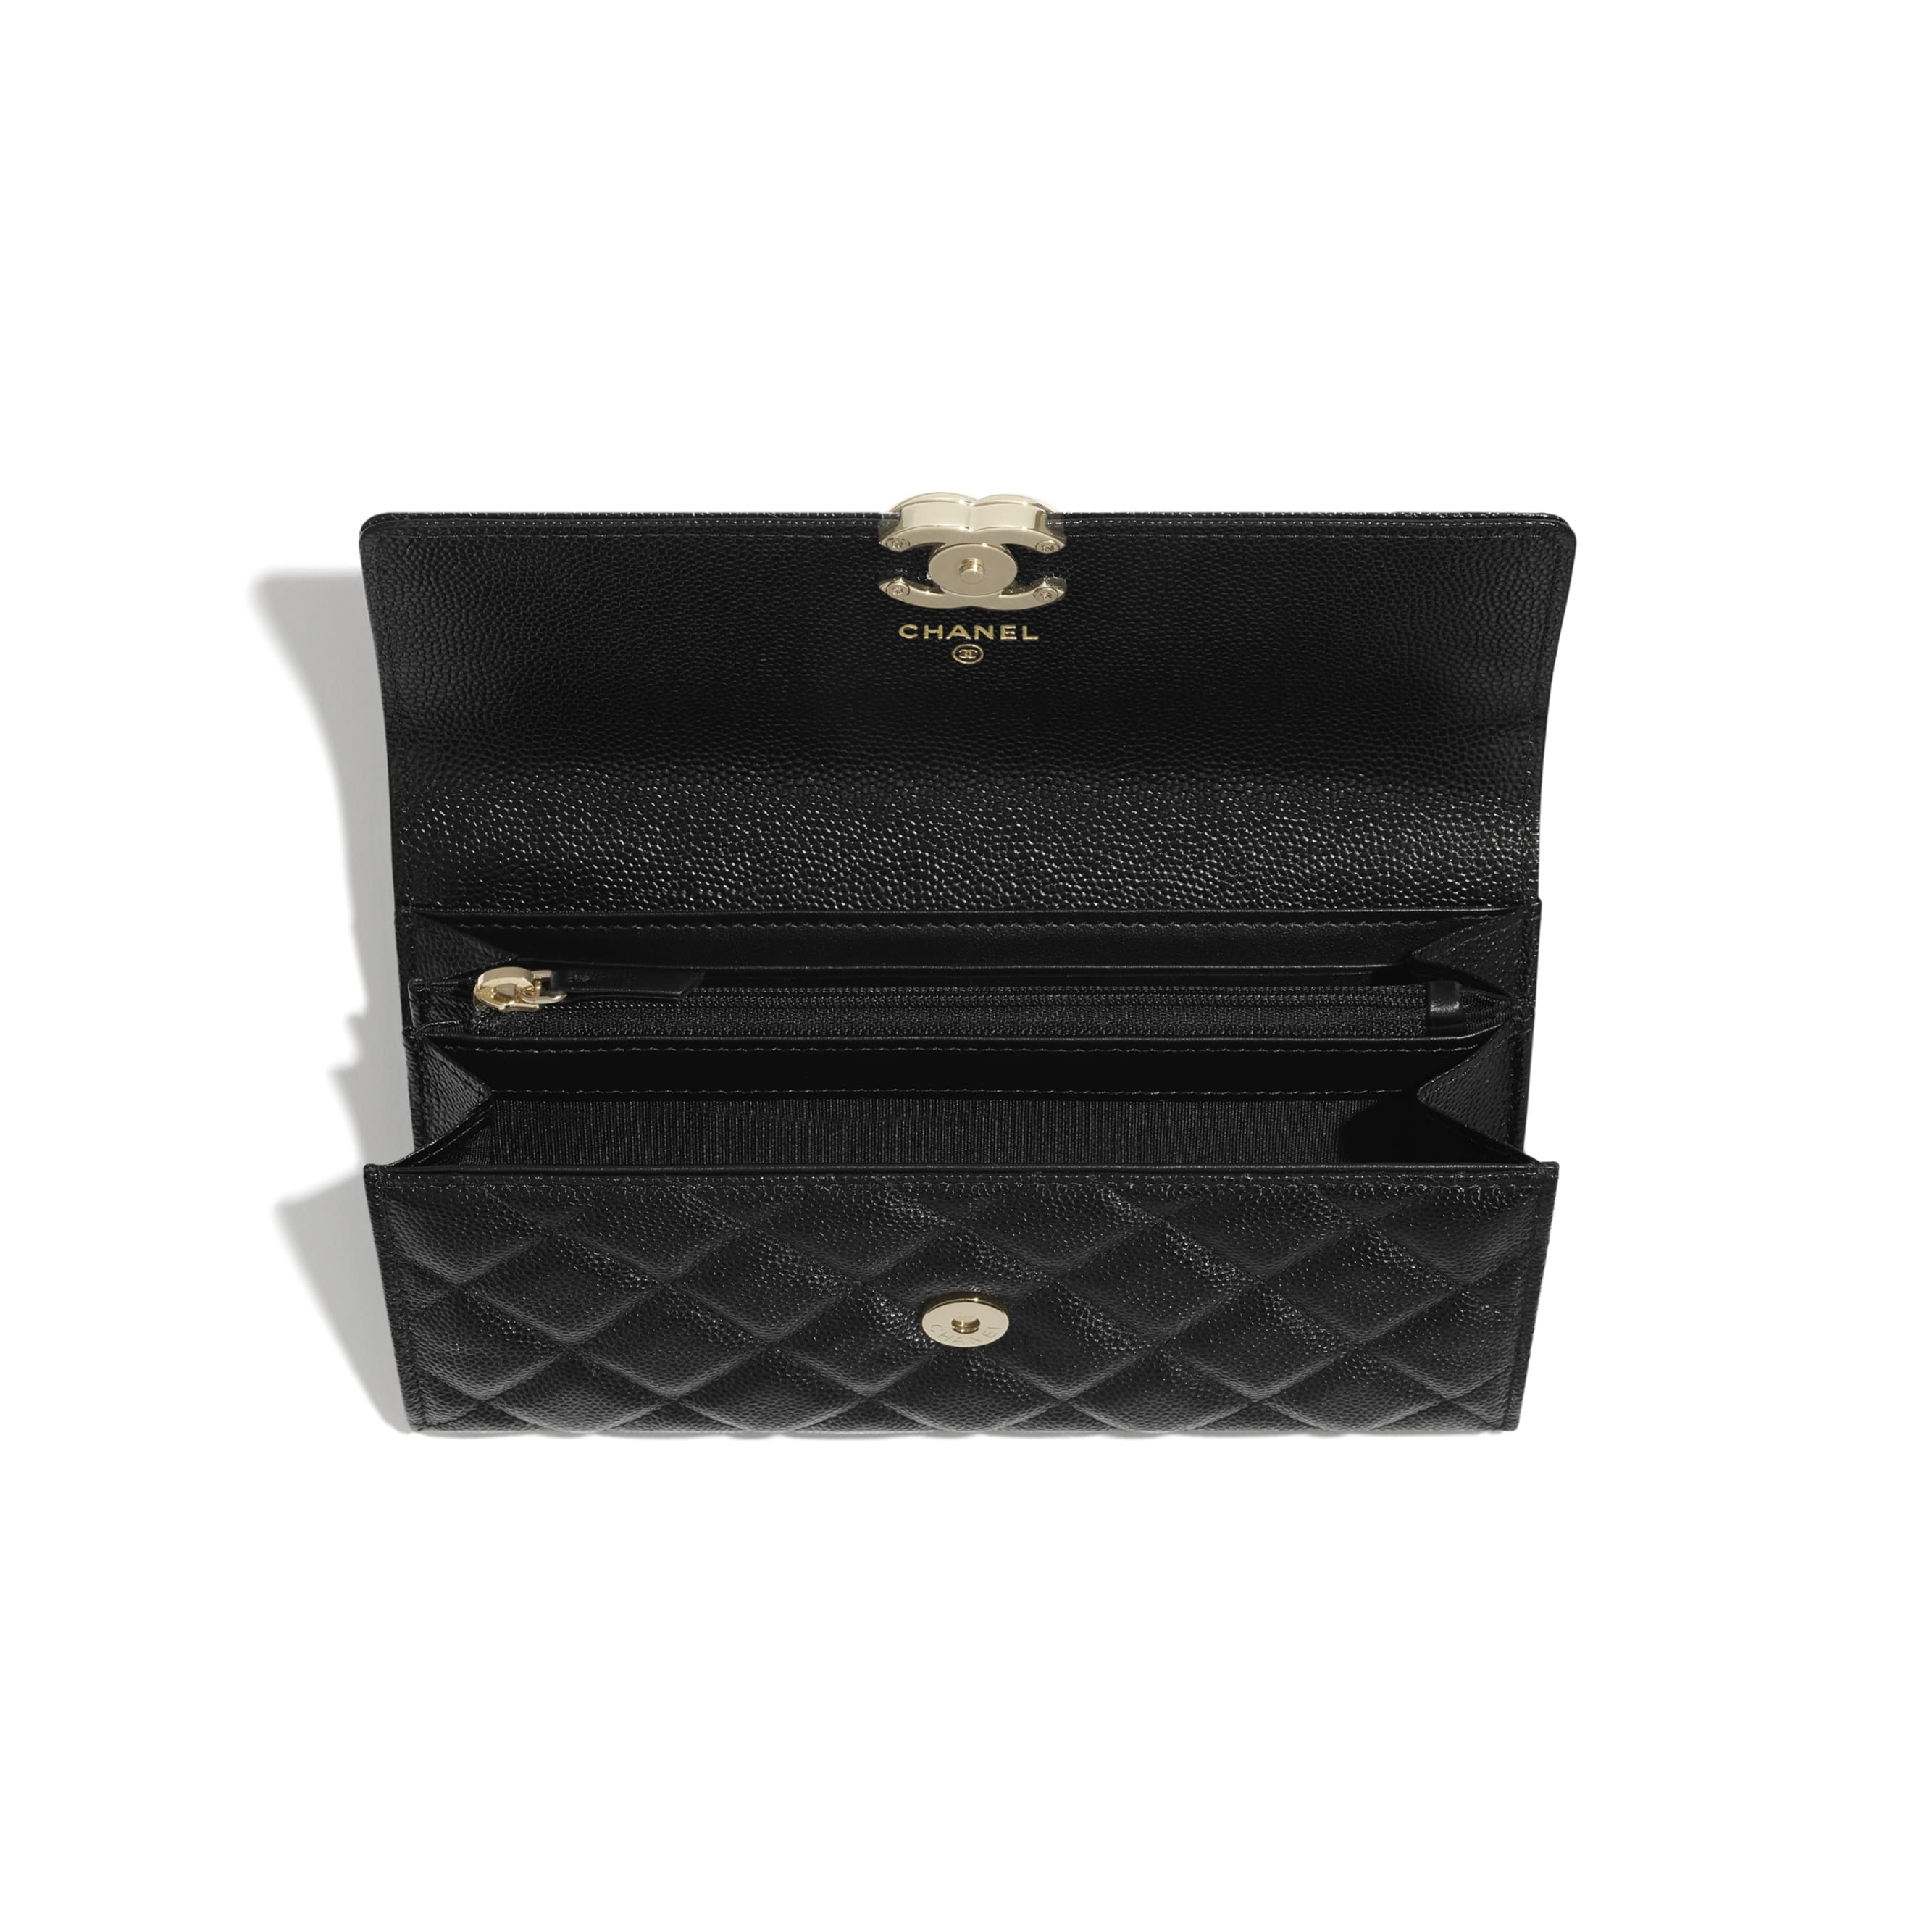 Long Flap Wallet - Black - Shiny Grained Calfskin, Gold-Tone & Lacquered Metal  - CHANEL - Other view - see standard sized version